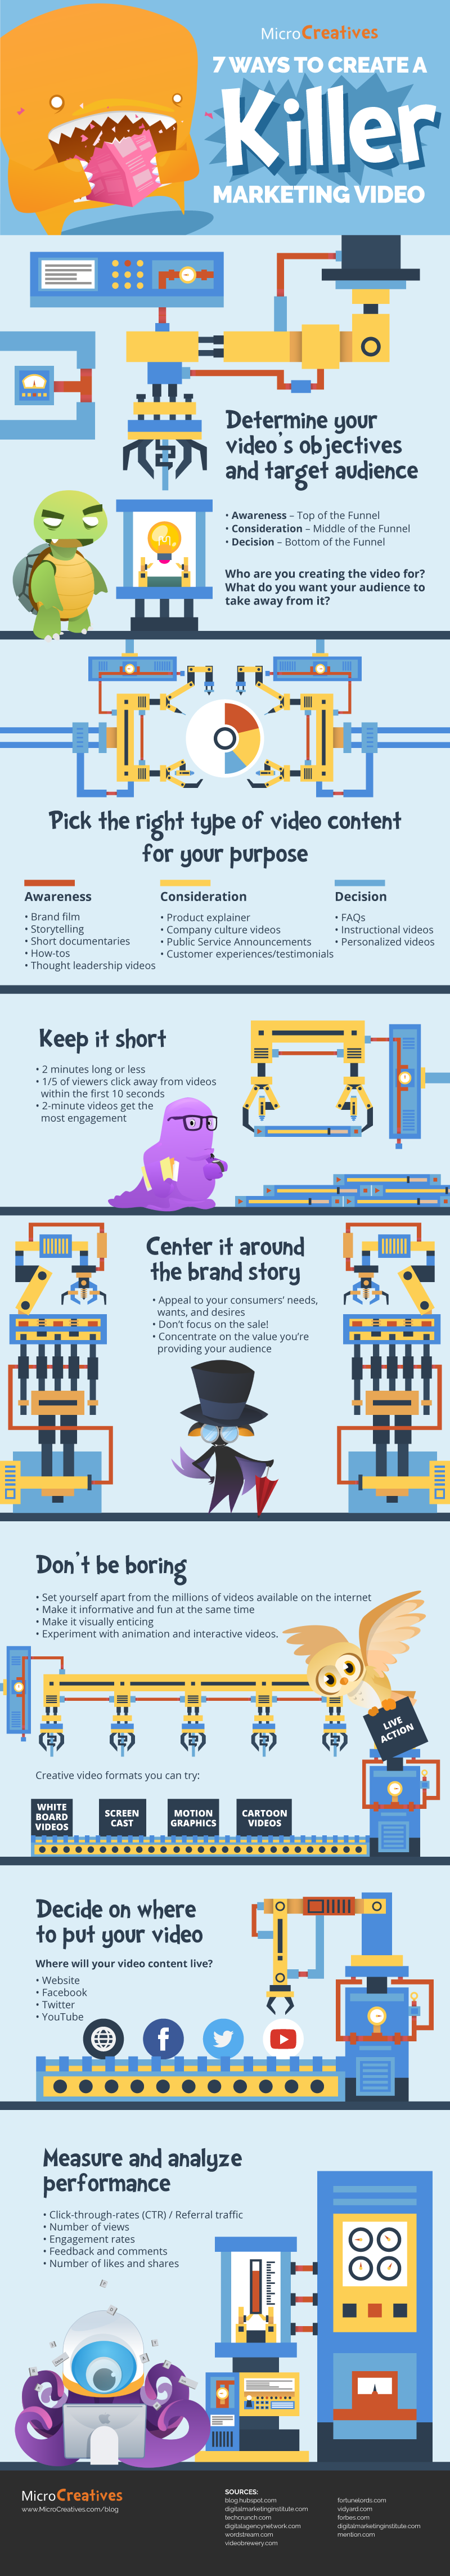 7 Ways to Create a Killer Marketing Video [Infographic] | Video Marketing